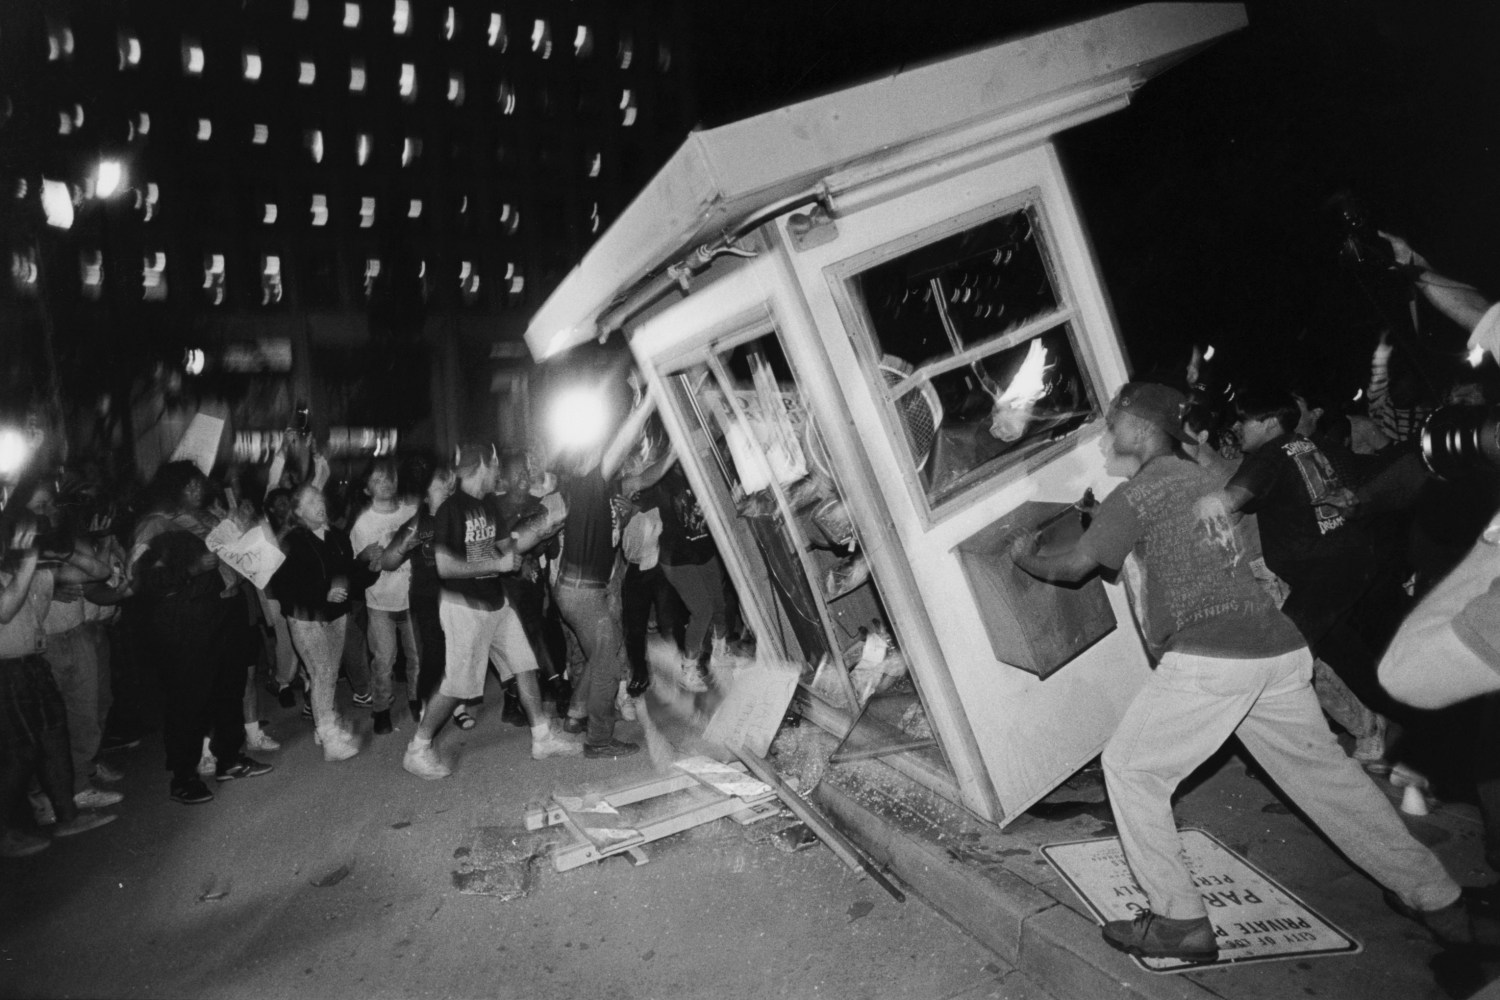 los angeles the city of riots Los angeles city council members and others on friday marked the 25 years since the los angeles riots by organizing events intended to display what organizers called a cross-cultural display of unity at city hall.